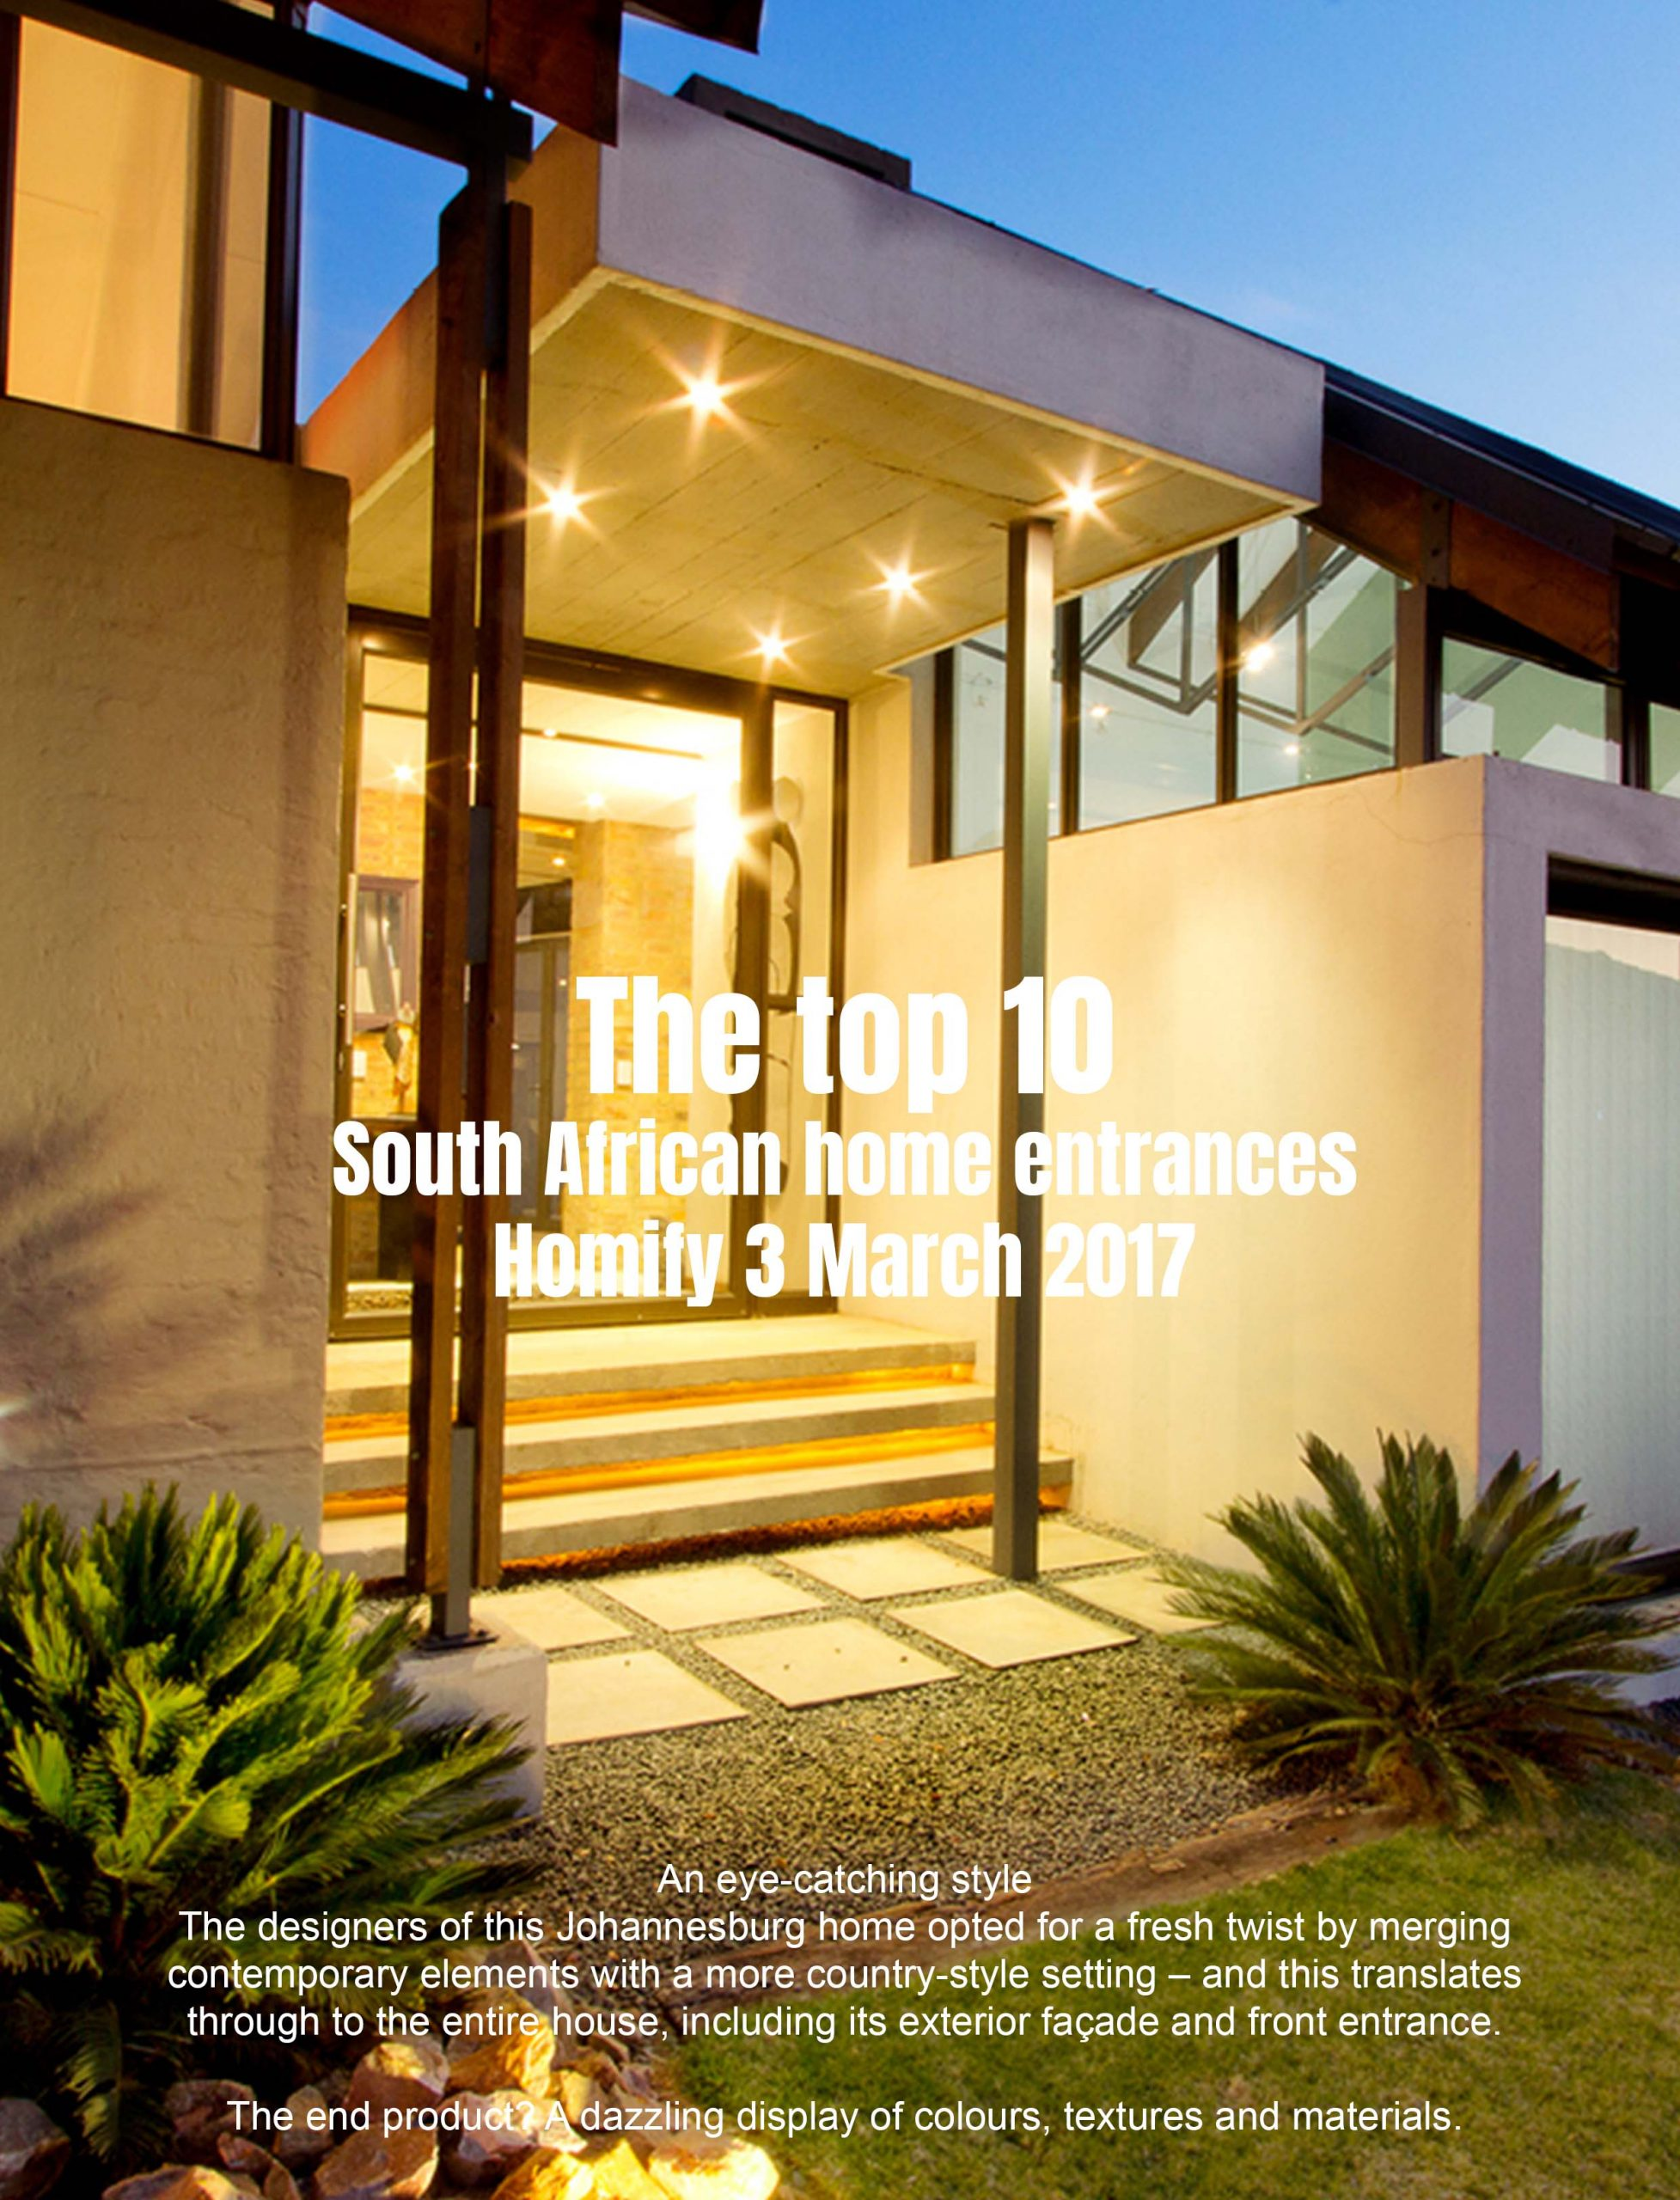 Homify-The top 10 South African home entrances pic